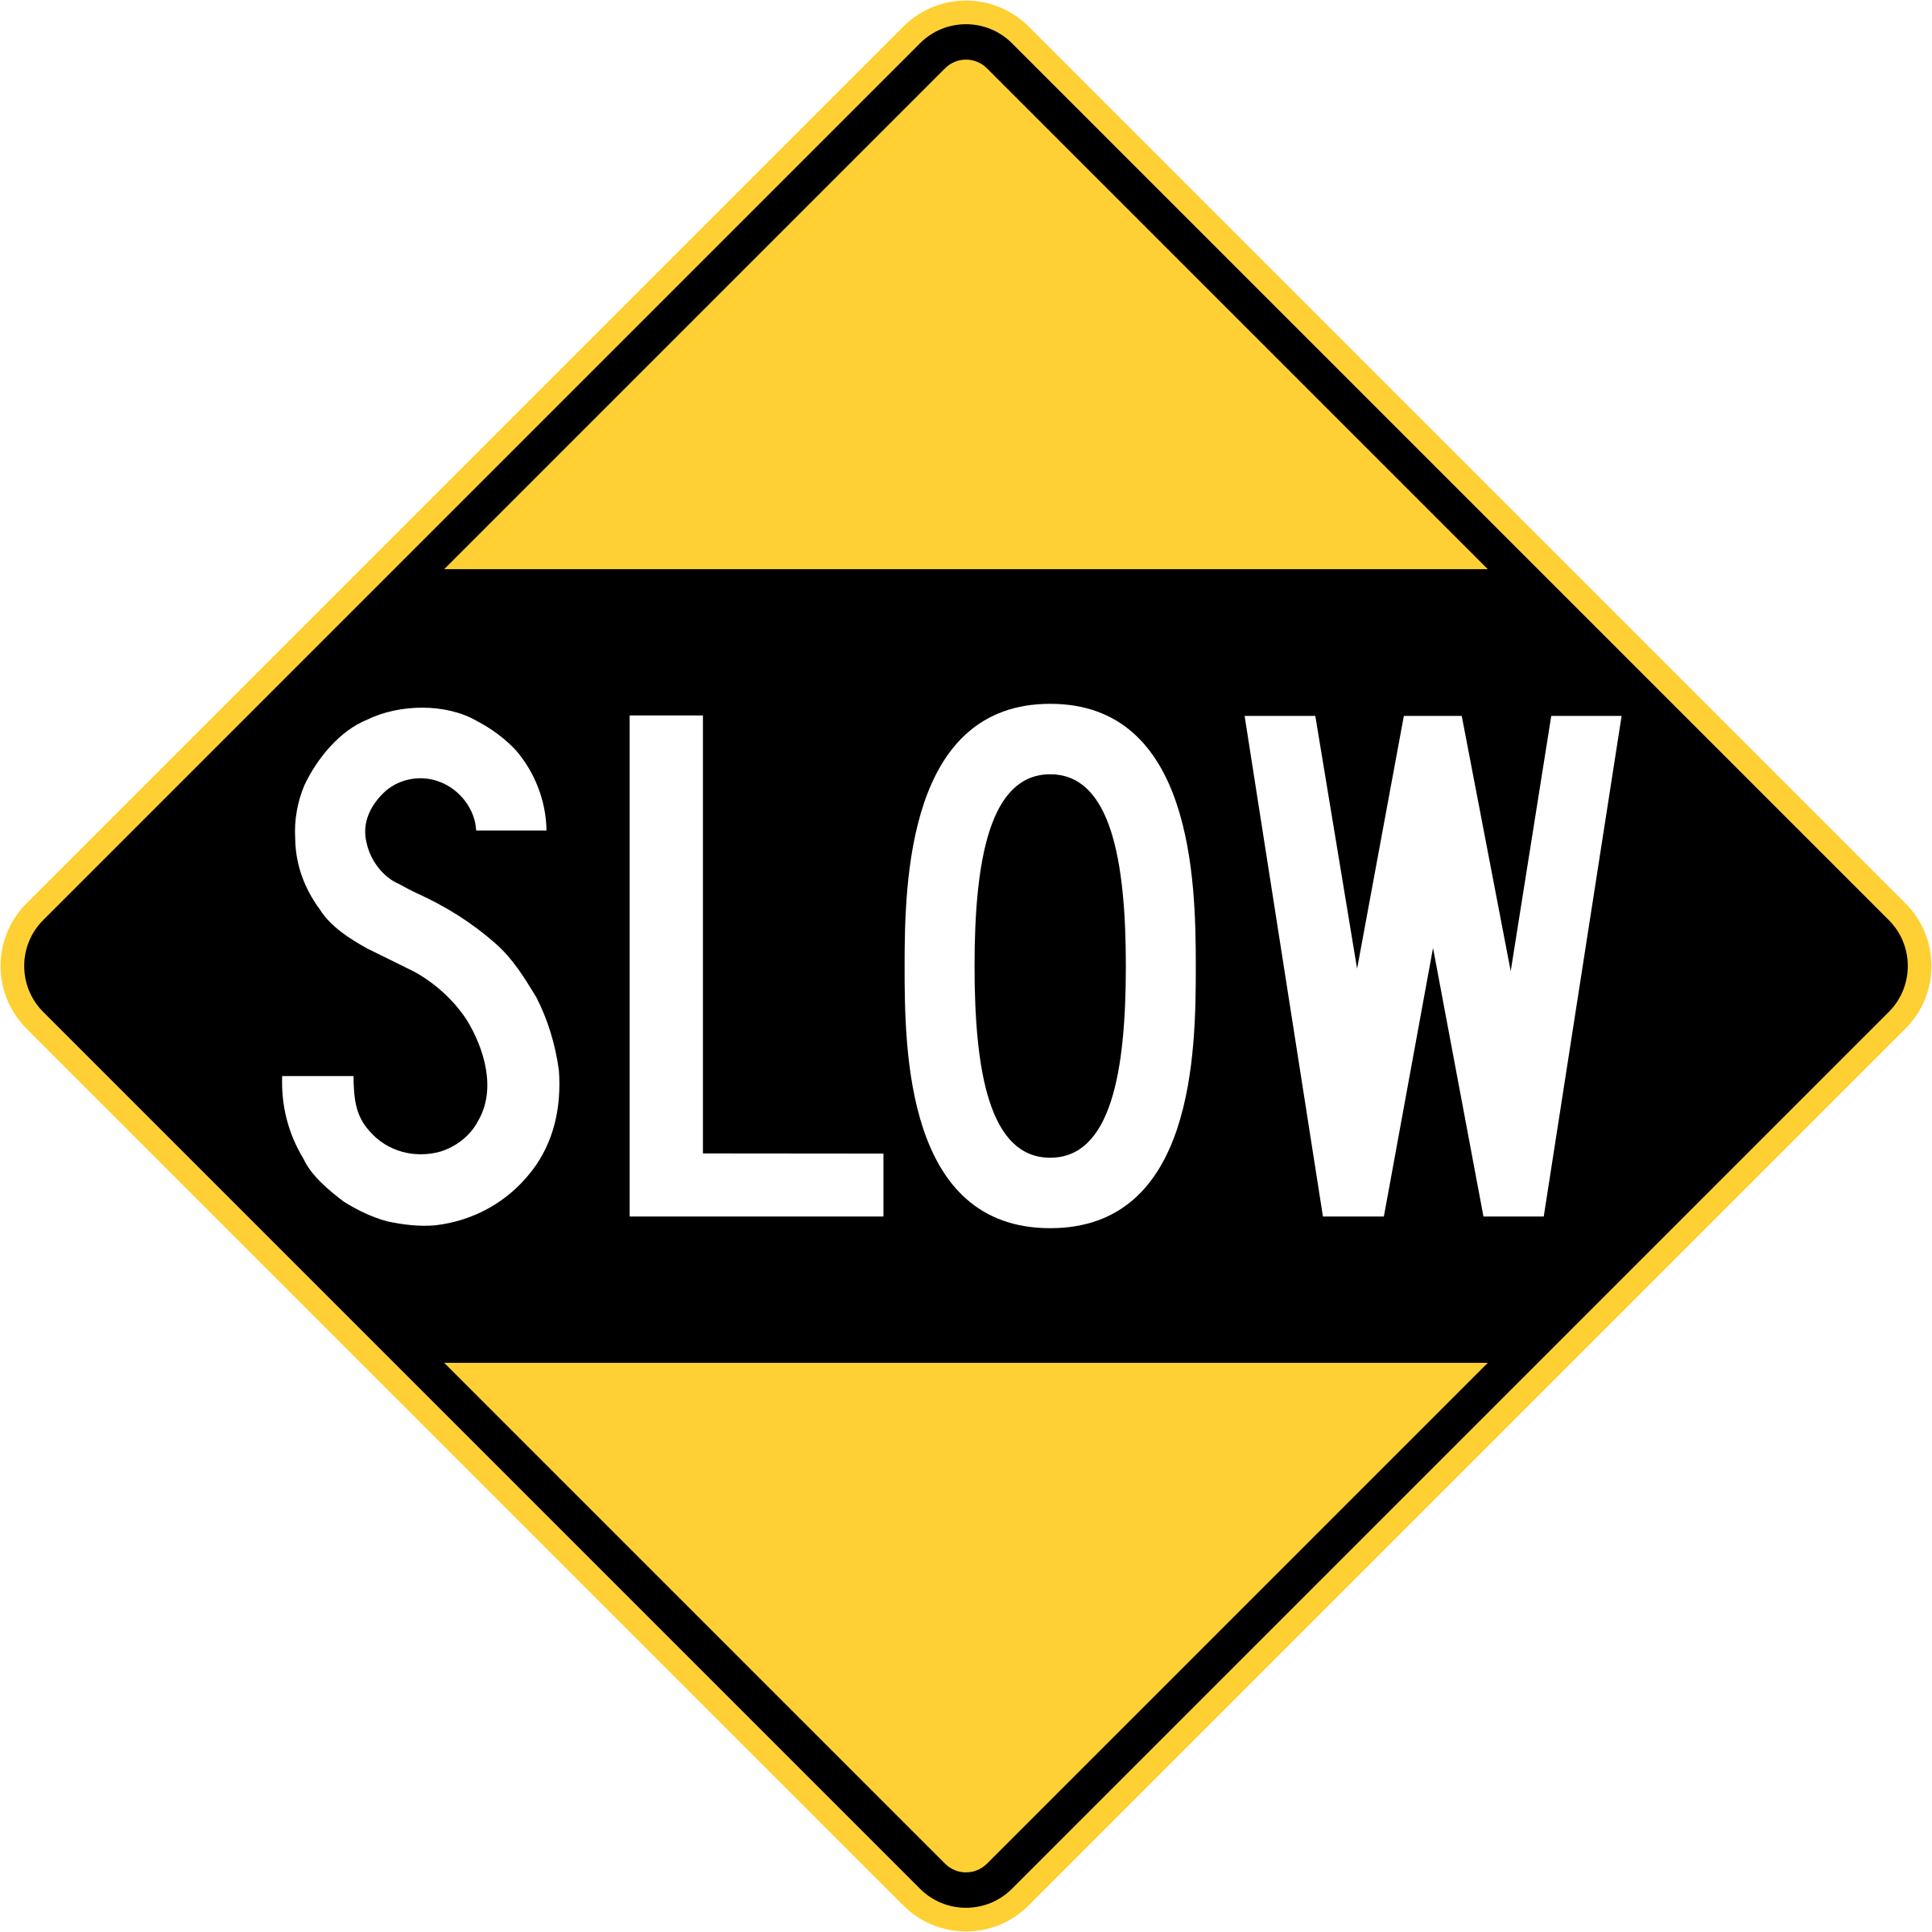 Drive Slowly Sign (Obsolete, U.S.A.) by jonathan357